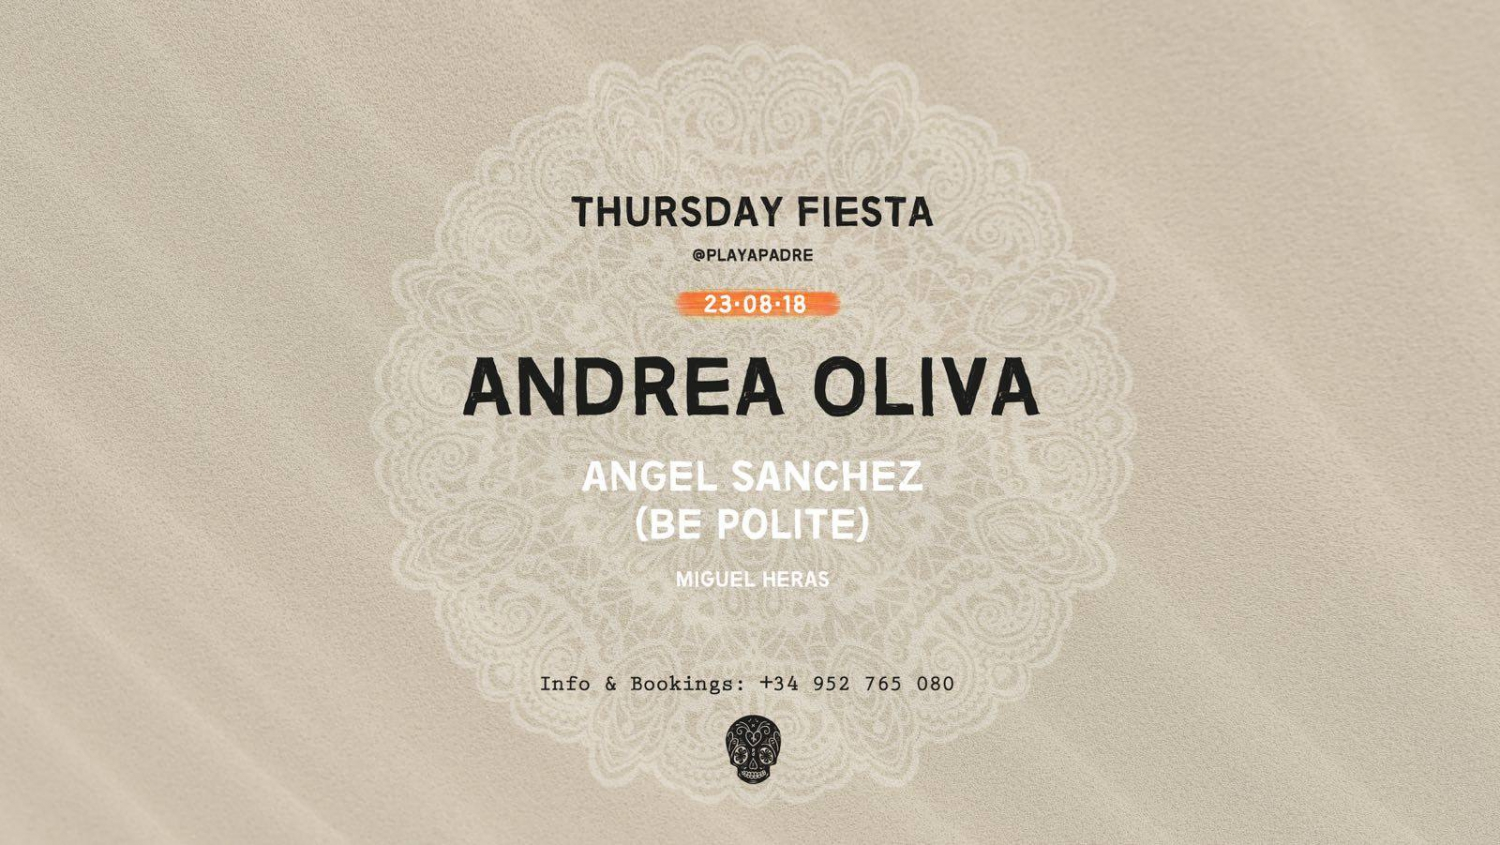 Thursday Fiesta